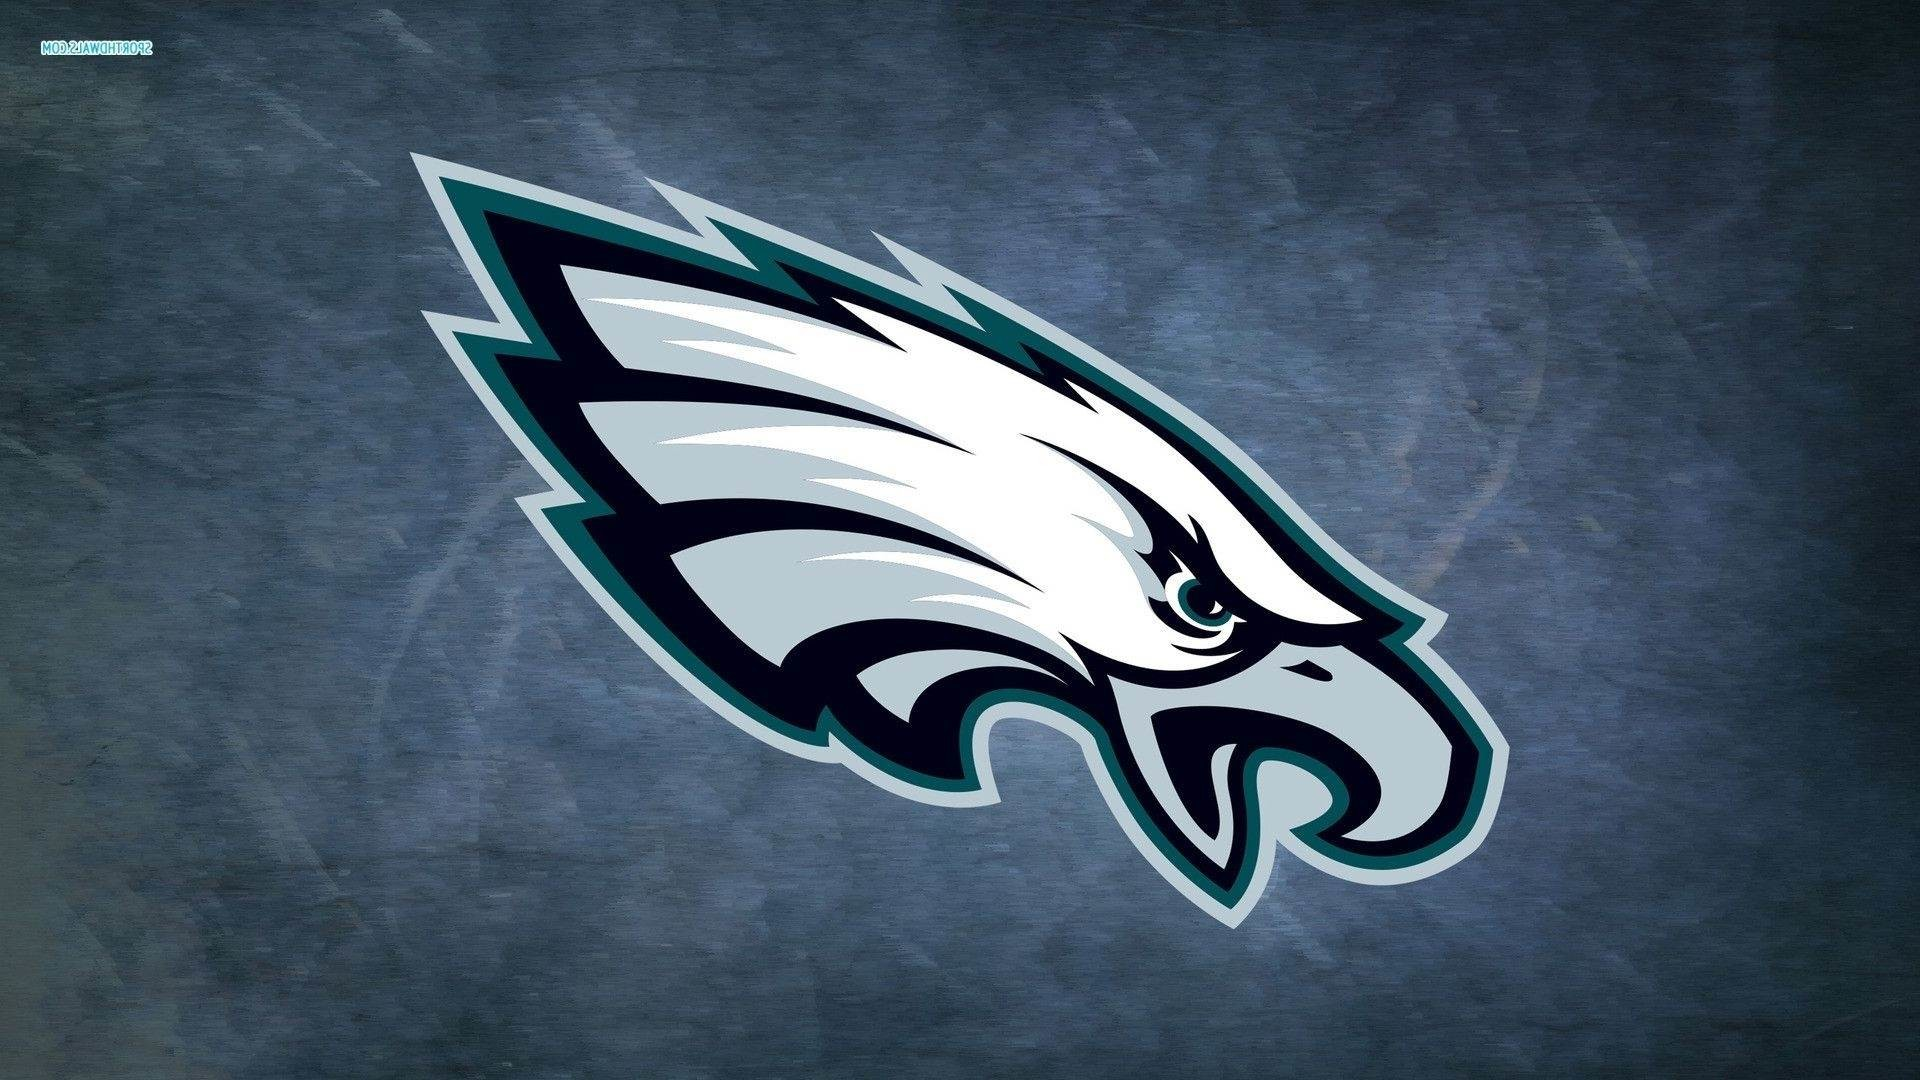 1920x1080 + images about Philly boy on Pinterest Stop signs, Bunker 1440×900 Free  Philadelphia · Philadelphia Eagles WallpaperEagle ...